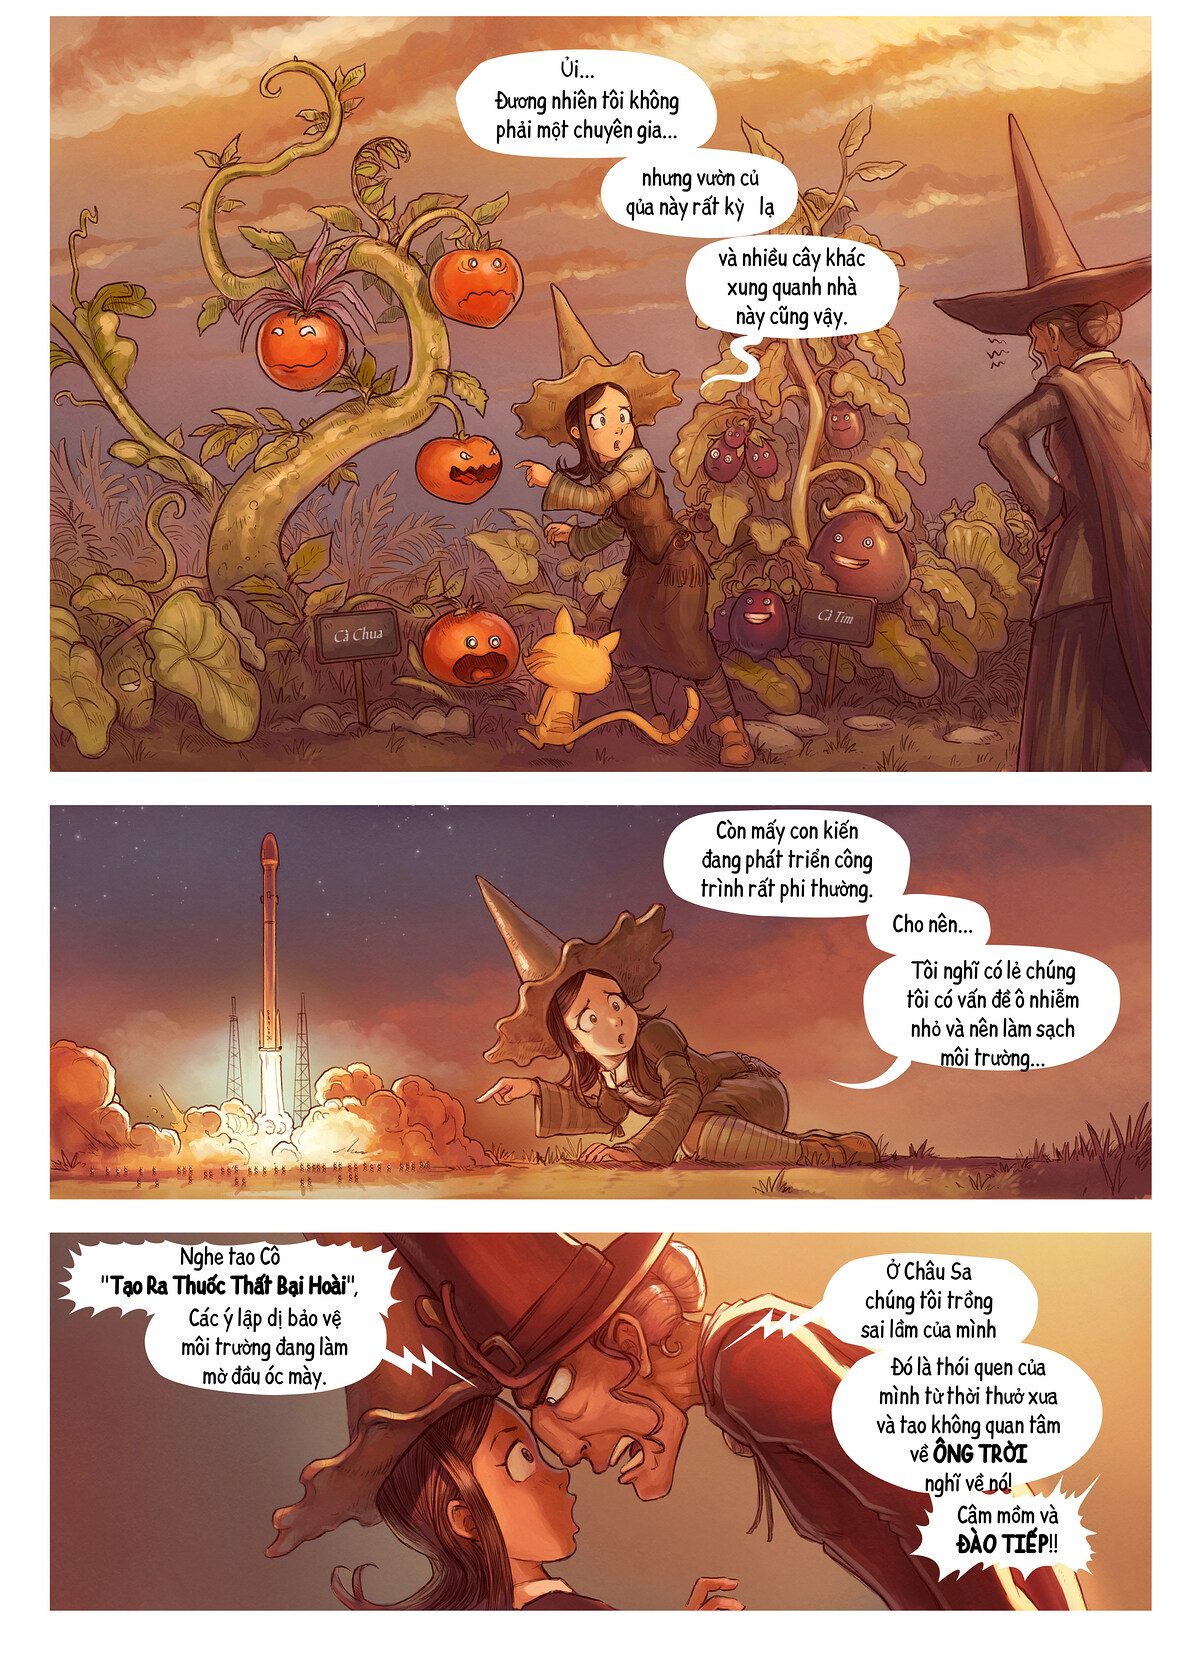 A webcomic page of Pepper&Carrot, Tập 19 [vi], trang 2